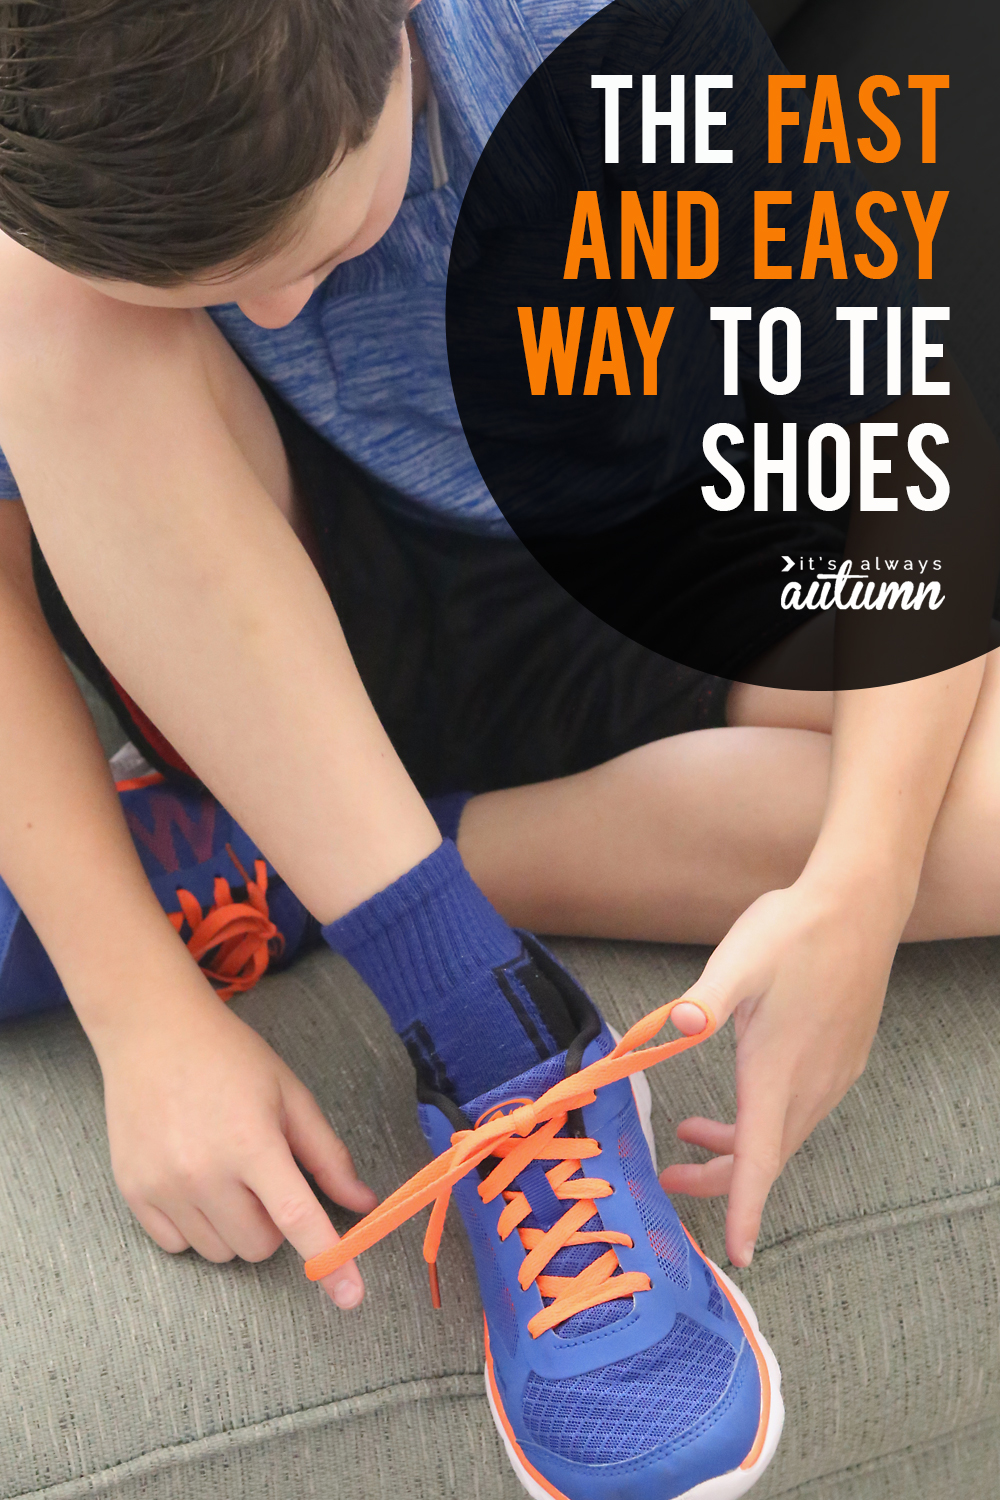 Teach your kids the fast and easy way to tie shoes! This technique is perfect for kids who have a hard time with the standard shoe tying approach.